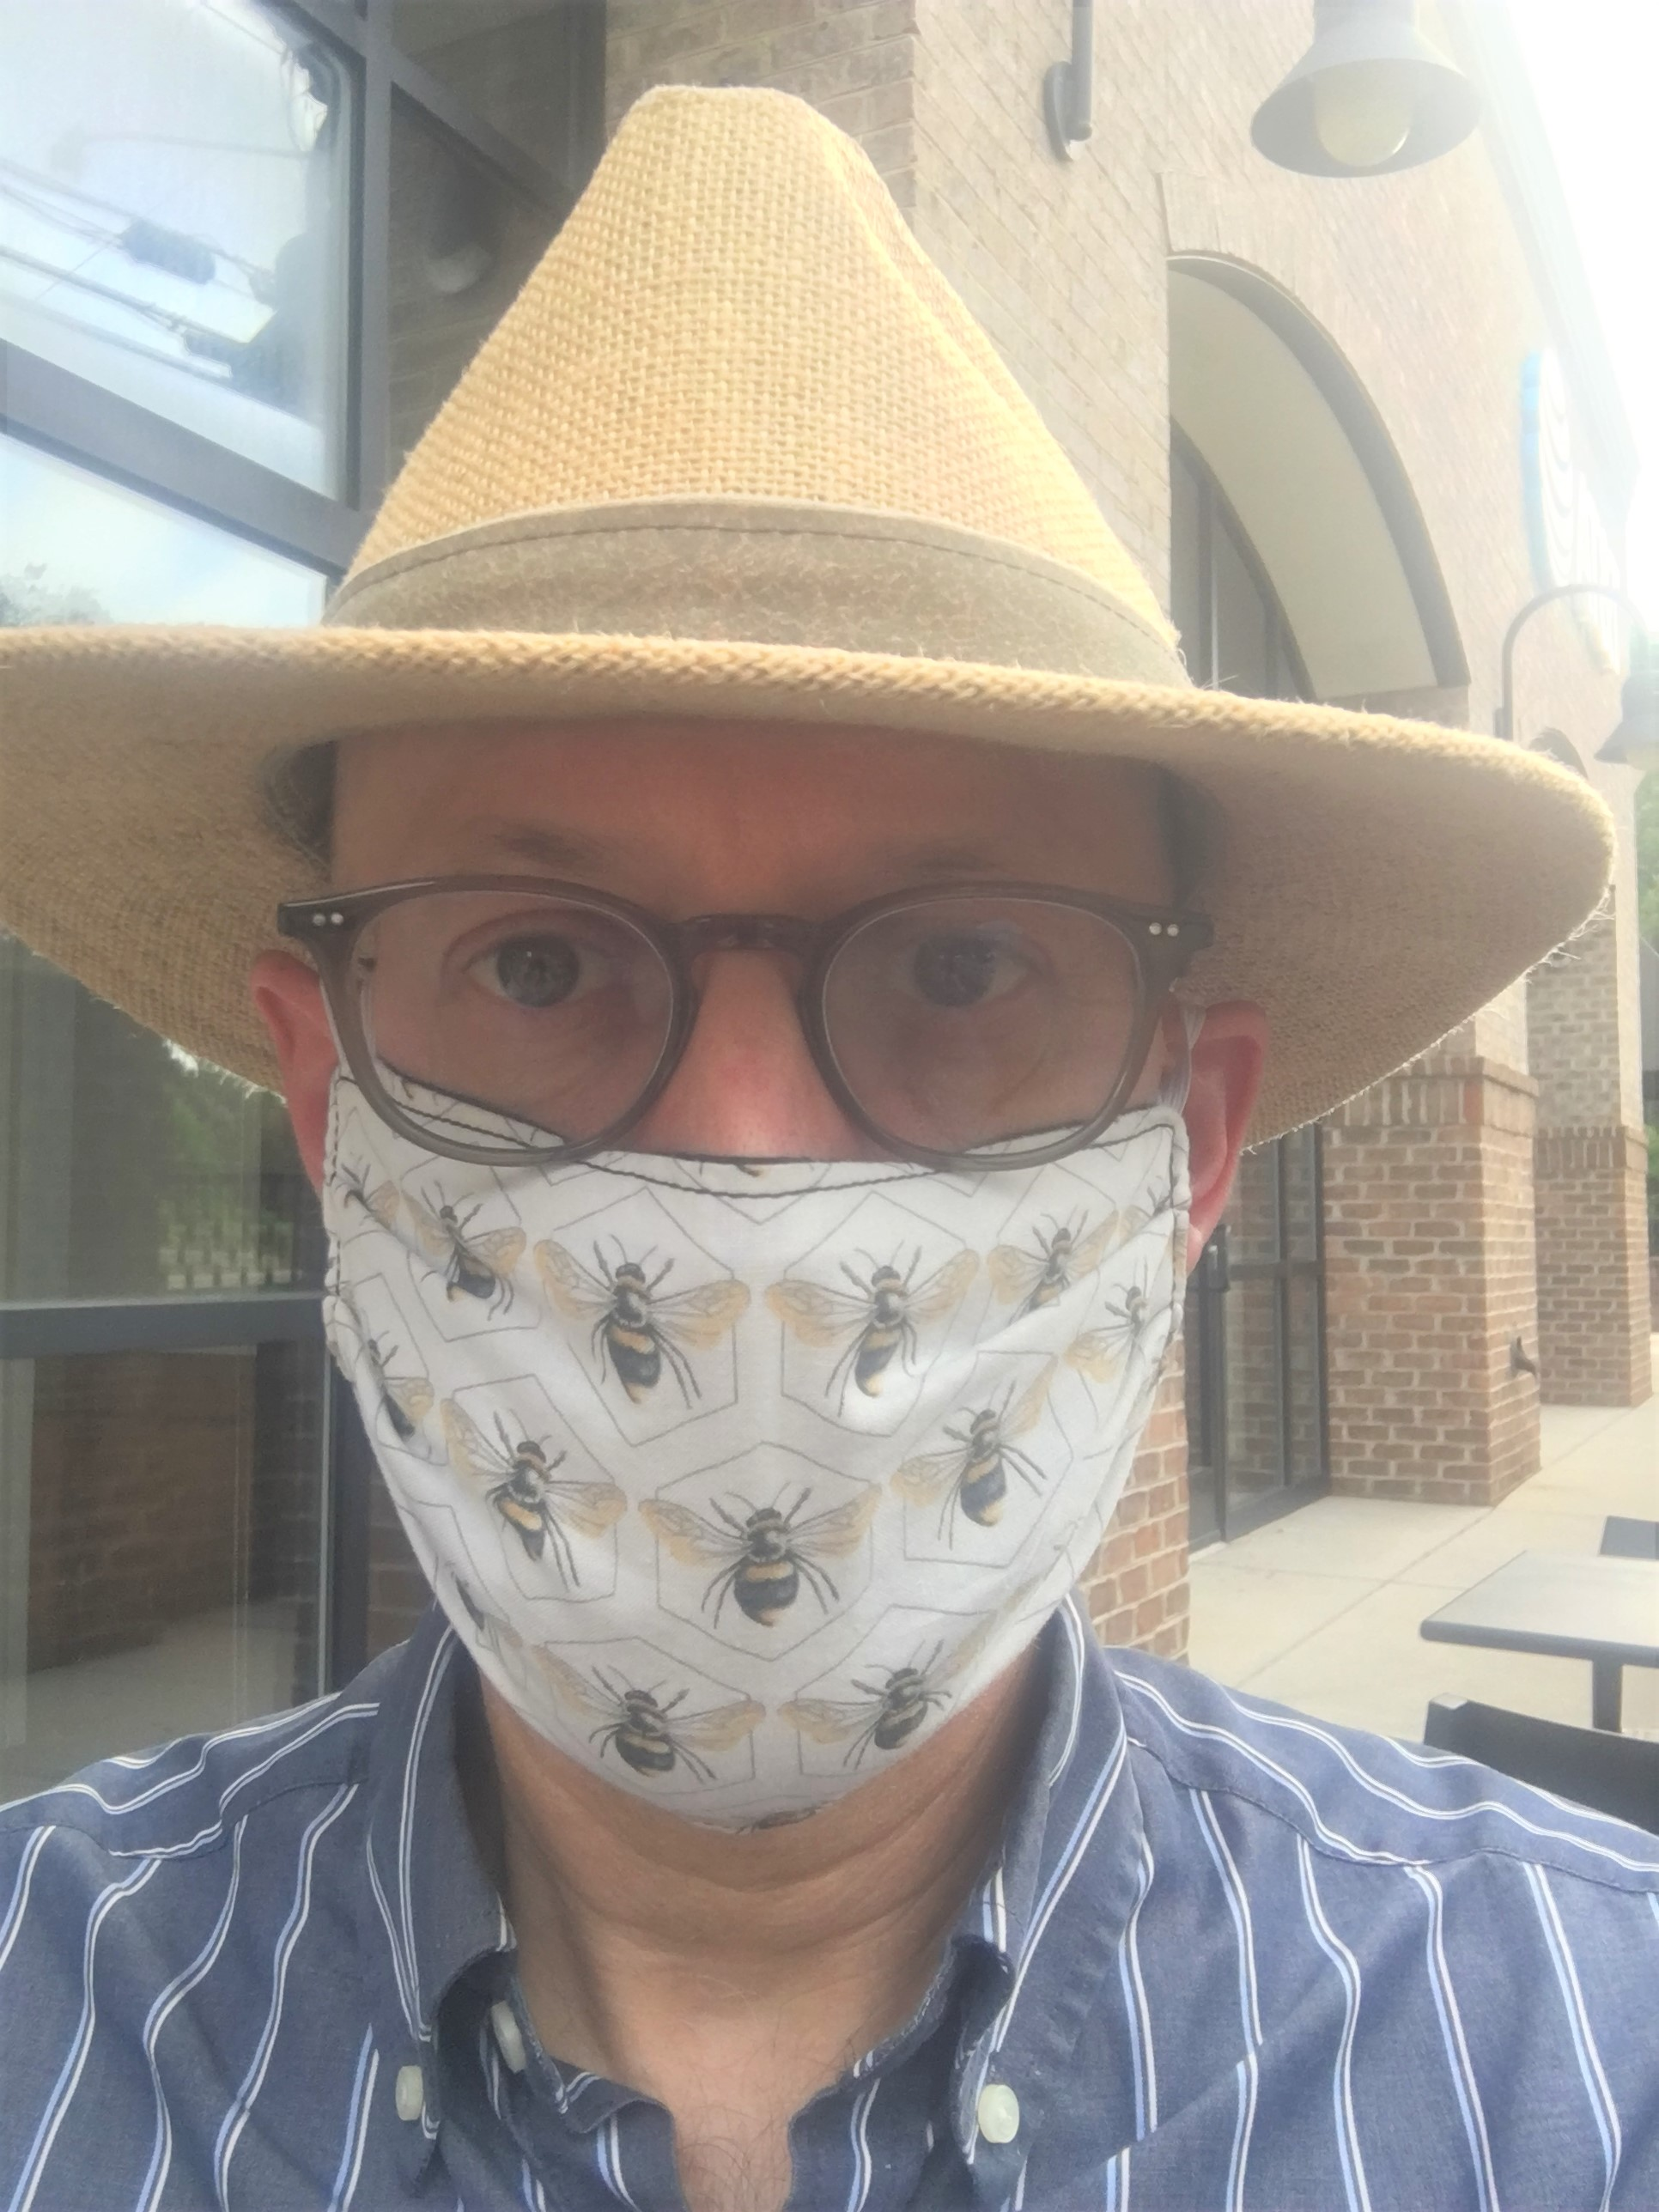 Dr. Paradise with a bee mask and hat